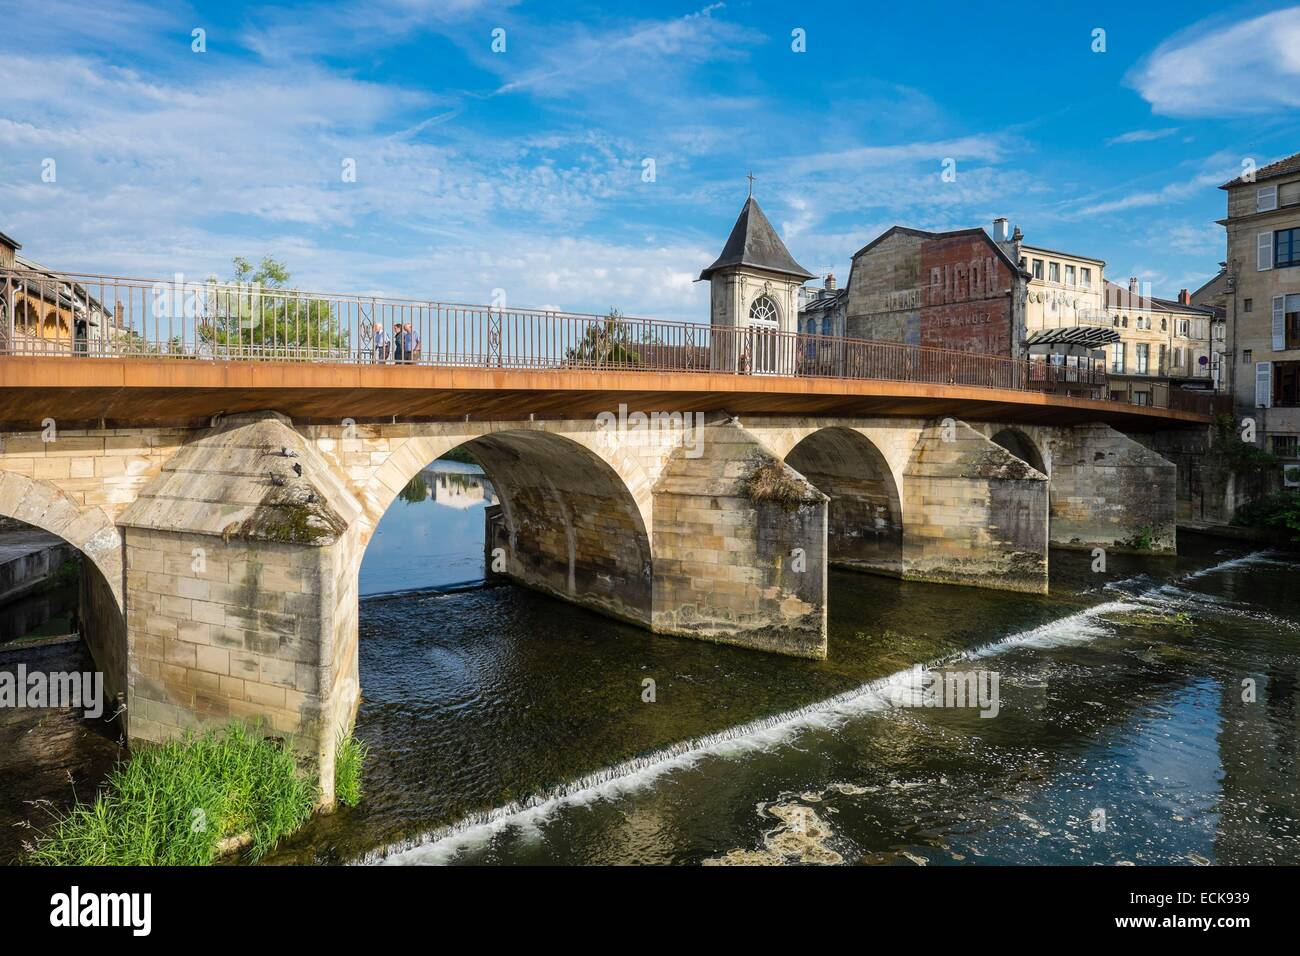 france meuse bar le duc notre dame bridge over the ornain river stock photo royalty free. Black Bedroom Furniture Sets. Home Design Ideas